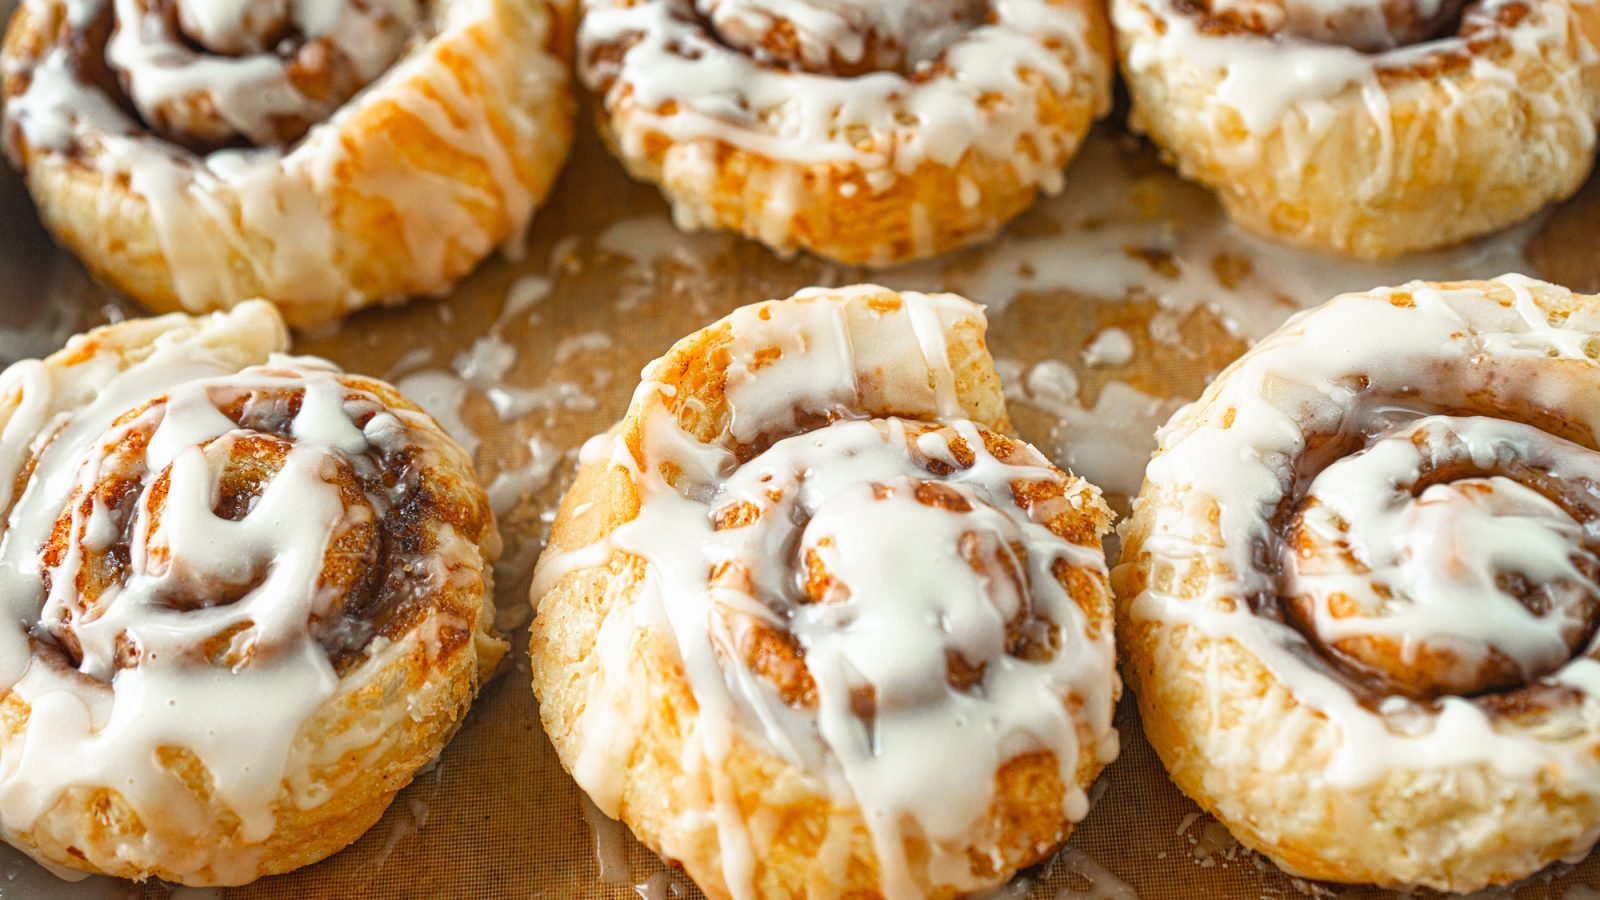 vegan cinnamon rolls made from puff pastry on a baking sheet